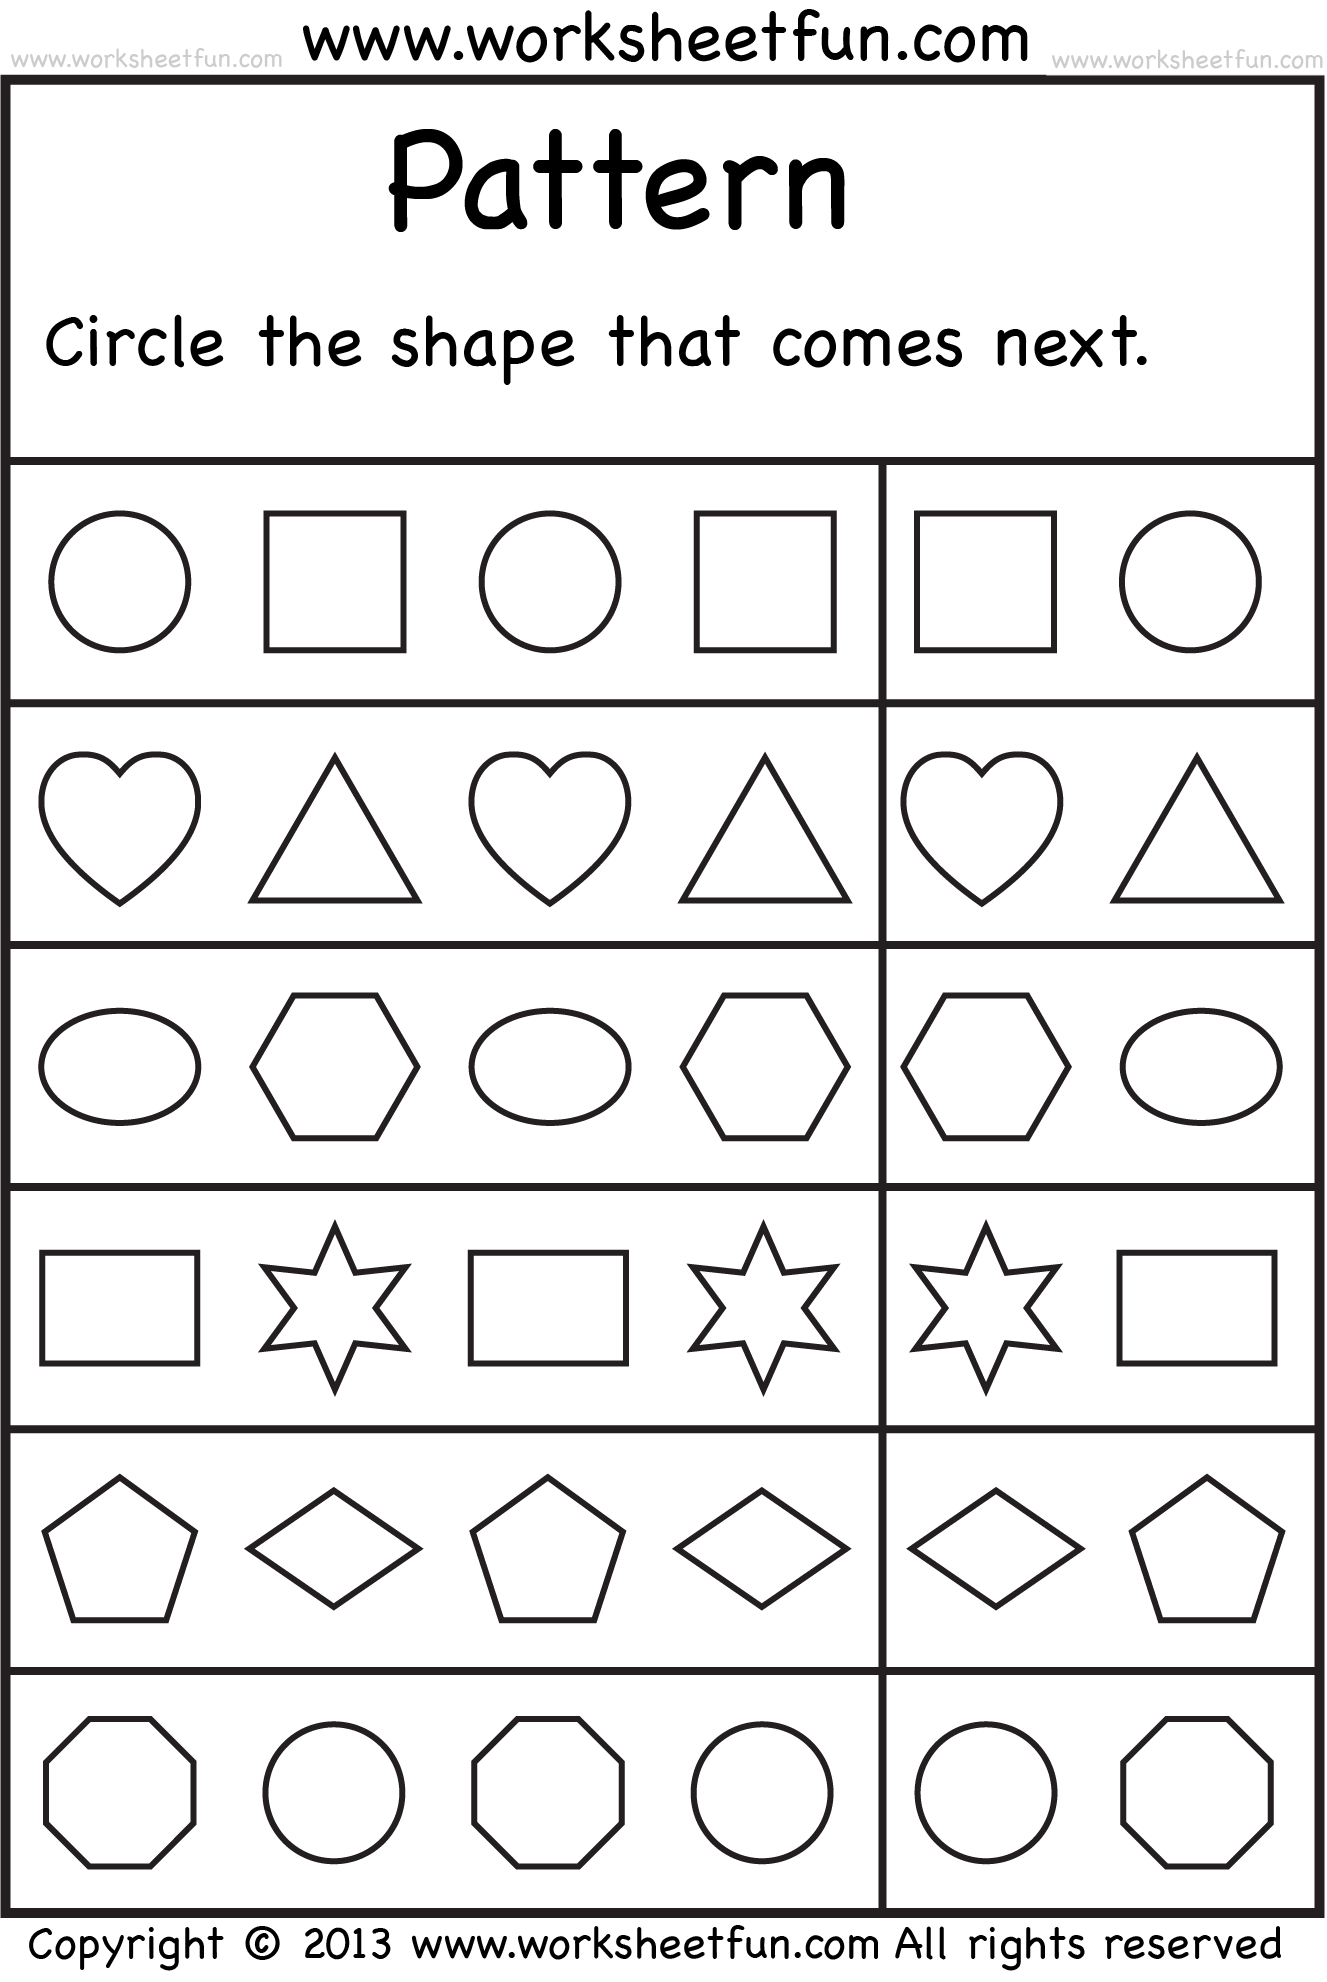 Proatmealus  Unique  Images About School Worksheets On Pinterest  Number Words  With Licious  Images About School Worksheets On Pinterest  Number Words Alphabet Worksheets And Free Printable Kindergarten Worksheets With Breathtaking Division Word Problems Th Grade Worksheets Also Mean And Median Worksheet In Addition Convert Fractions To Percents Worksheet And Naming Elements Worksheet As Well As Water Resources Worksheet Additionally Chinese Numbers Worksheet From Pinterestcom With Proatmealus  Licious  Images About School Worksheets On Pinterest  Number Words  With Breathtaking  Images About School Worksheets On Pinterest  Number Words Alphabet Worksheets And Free Printable Kindergarten Worksheets And Unique Division Word Problems Th Grade Worksheets Also Mean And Median Worksheet In Addition Convert Fractions To Percents Worksheet From Pinterestcom